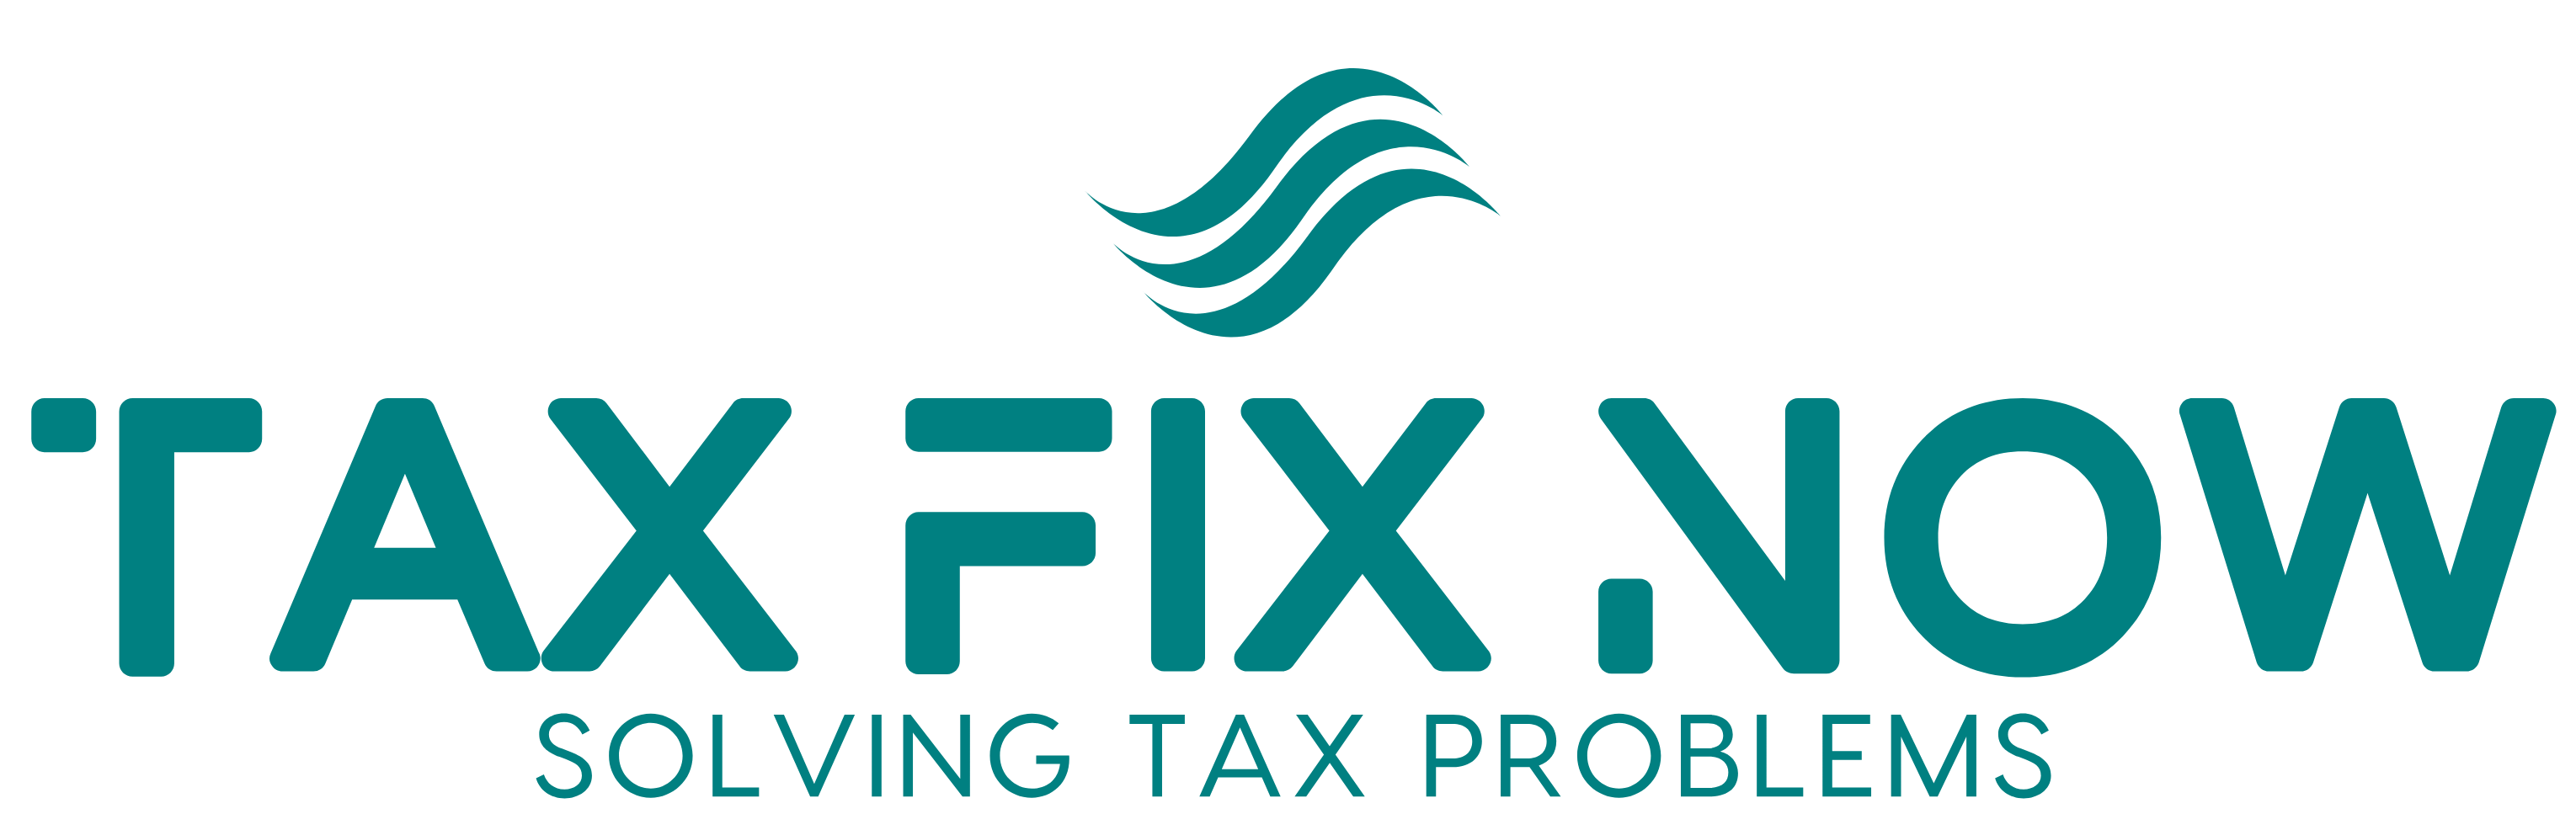 Highland Village, TX Bookkeeping Firm | Strategic Business Planning Page | Tax Fix Now